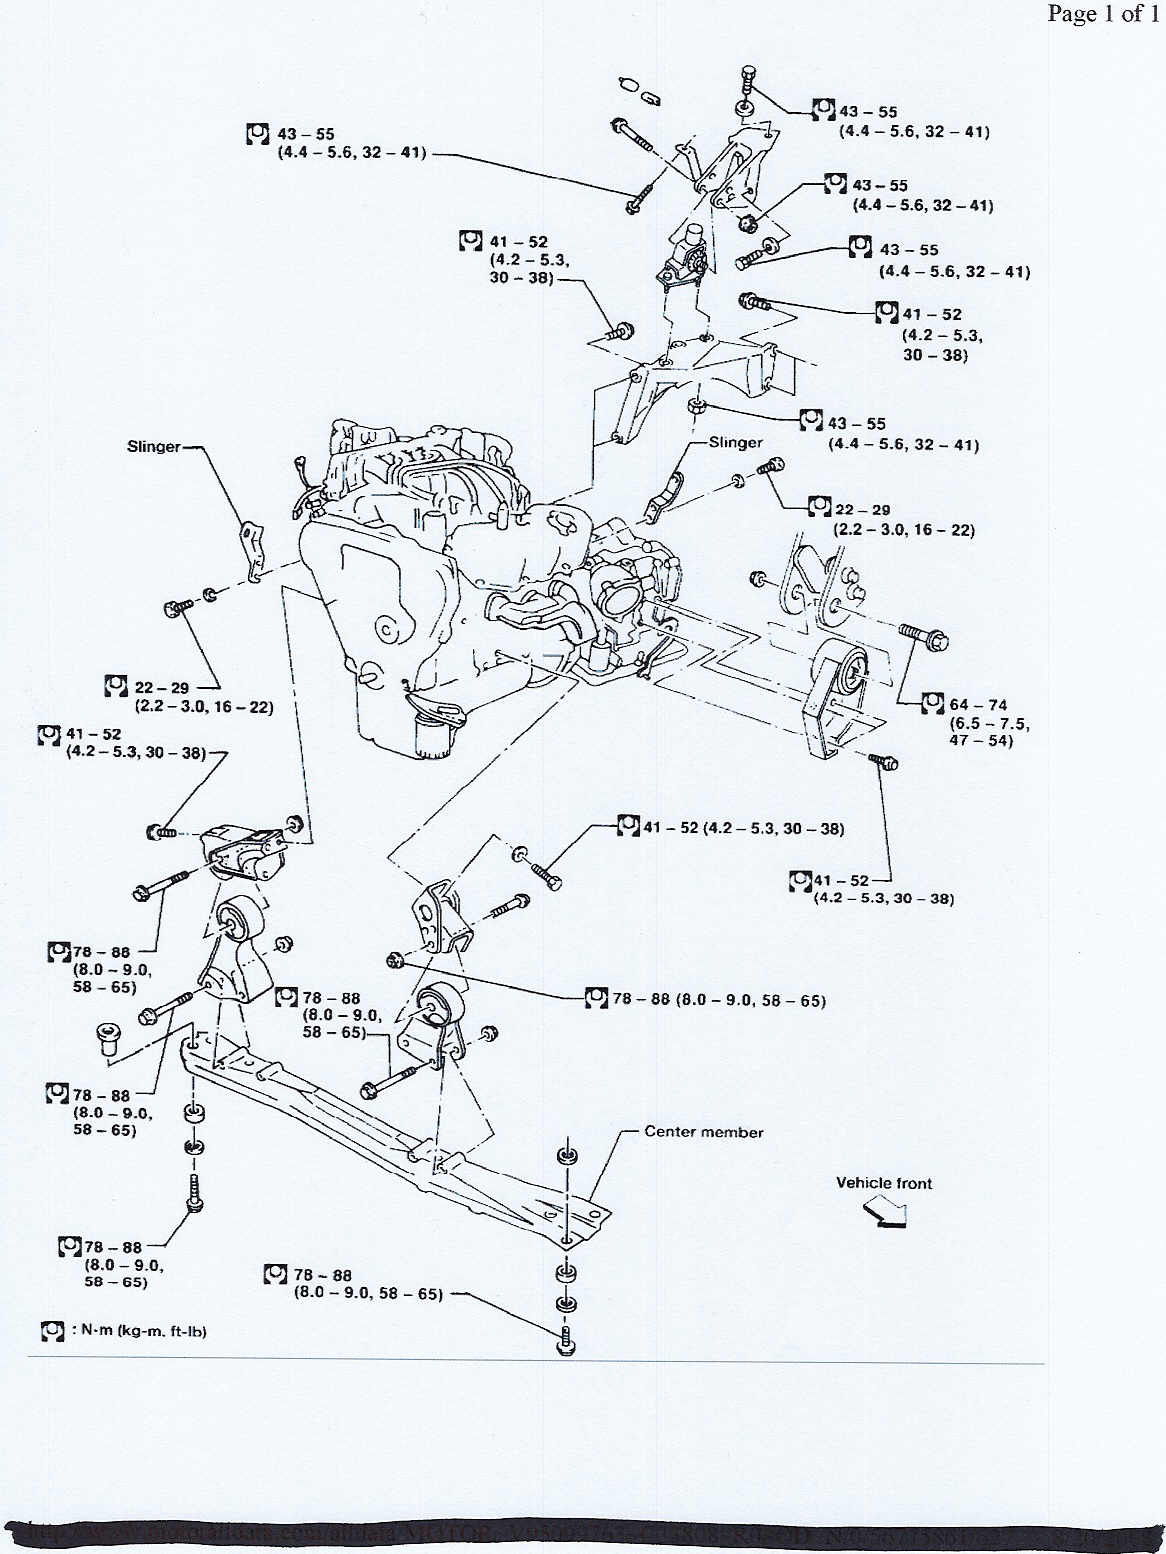 Magnificent 2008 Nissan 3 5 Engine Diagram Wiring Diagrams The Wiring Cloud Overrenstrafr09Org